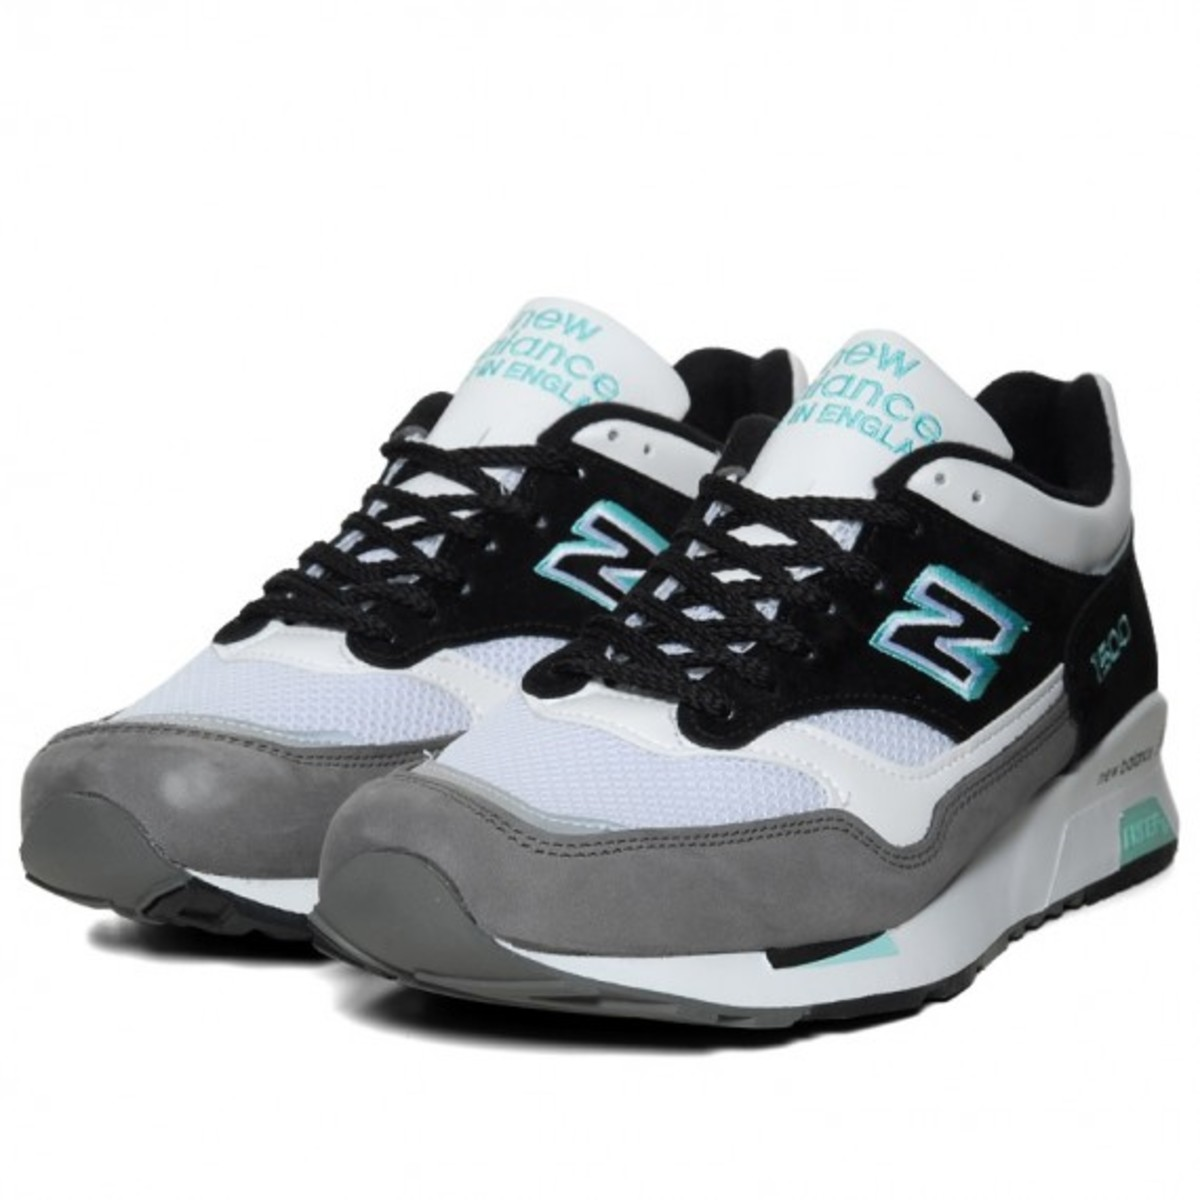 new-balance-m1500-grey-mint-01